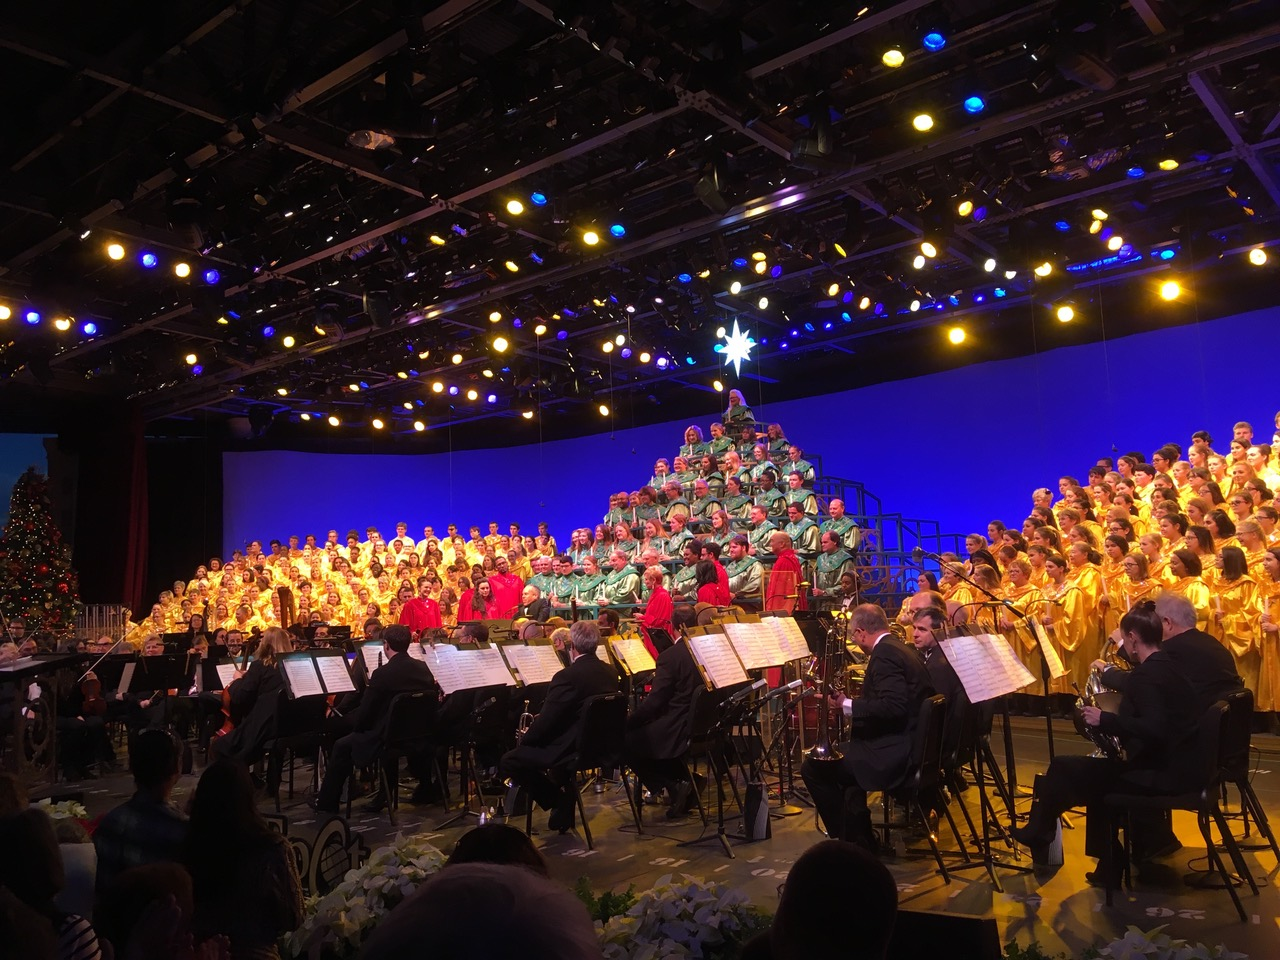 The annual Candlelight event takes place at Walt Disney World's Epcot International Festival of the Holidays in the World Showcase.